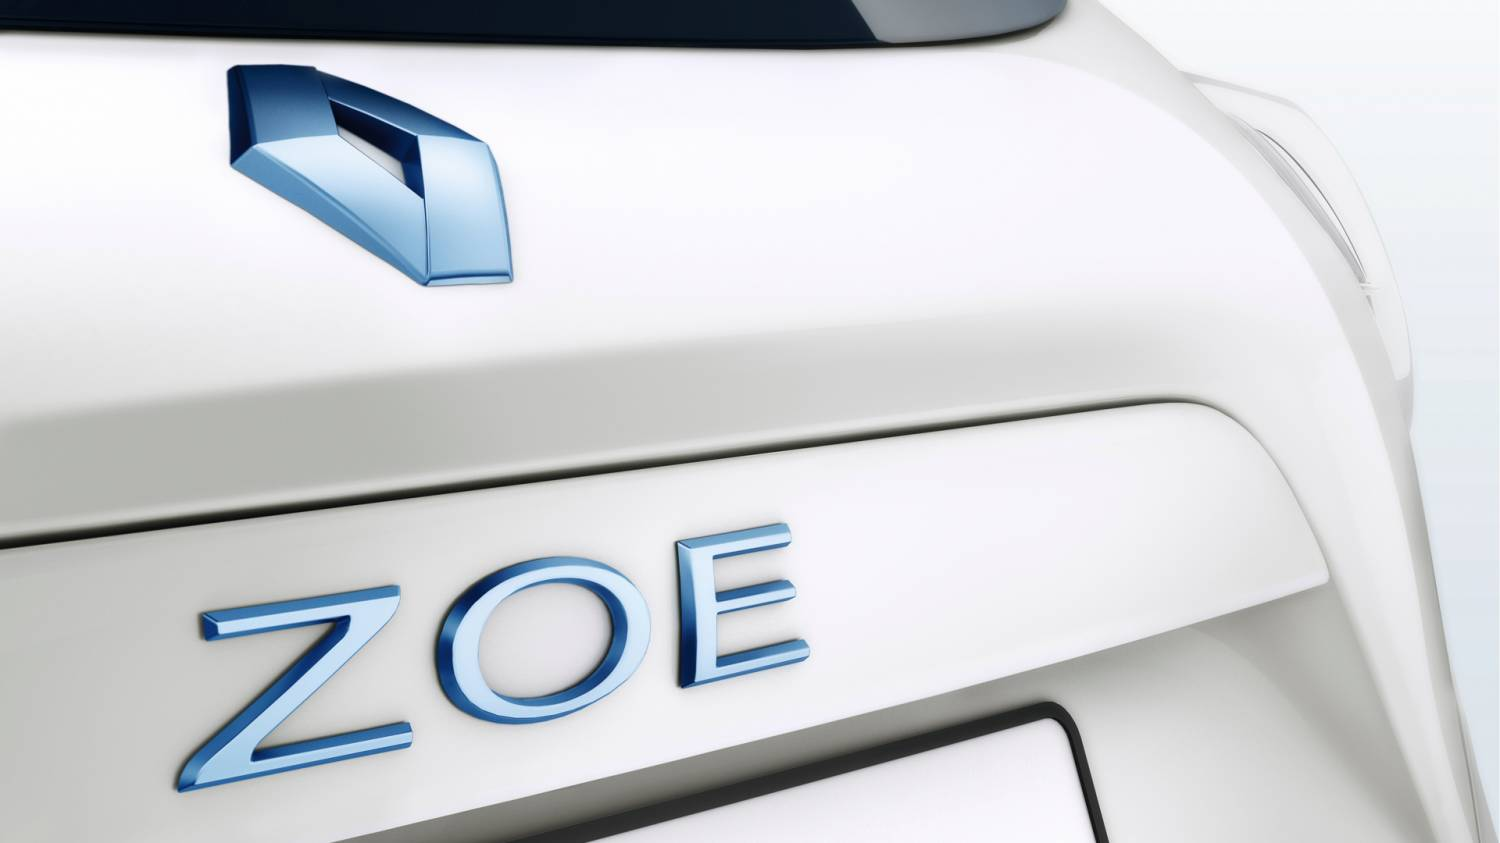 Музыка и видеоролик из рекламы Renault ZOE - Discover the New